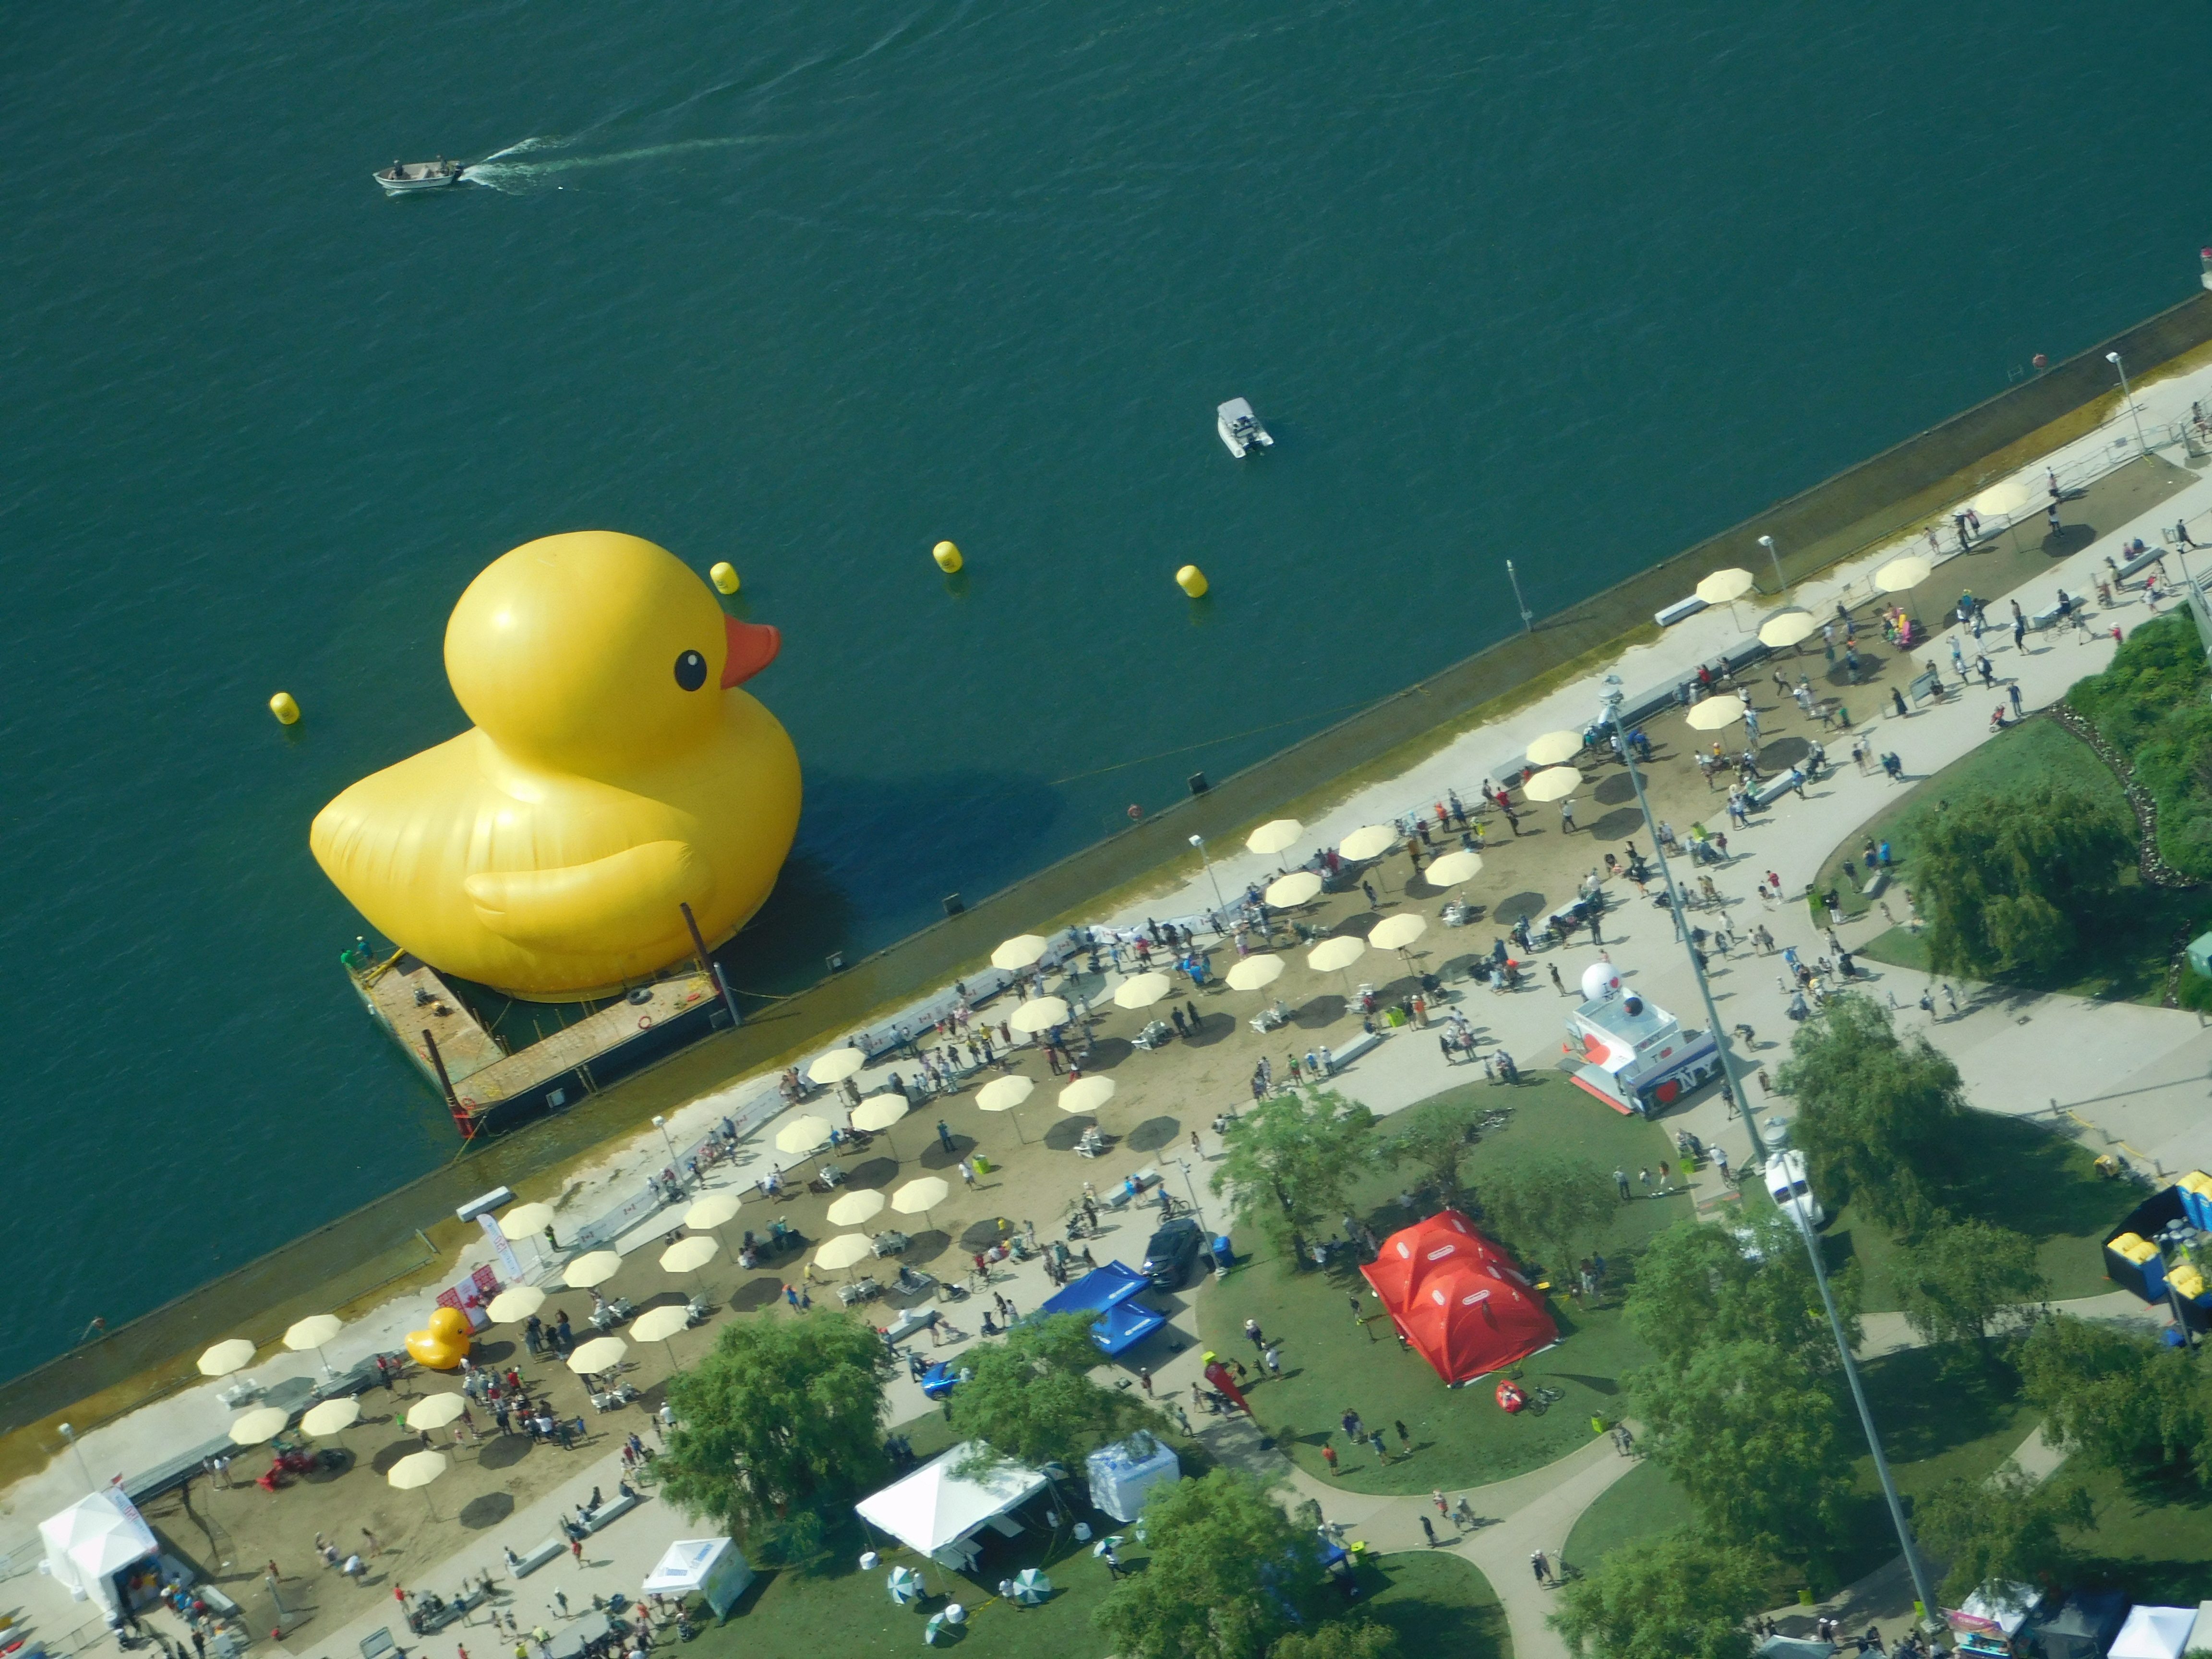 #14 The largest rubber duck in the world just happened to be in Toronto. This is him from the CN Tower.